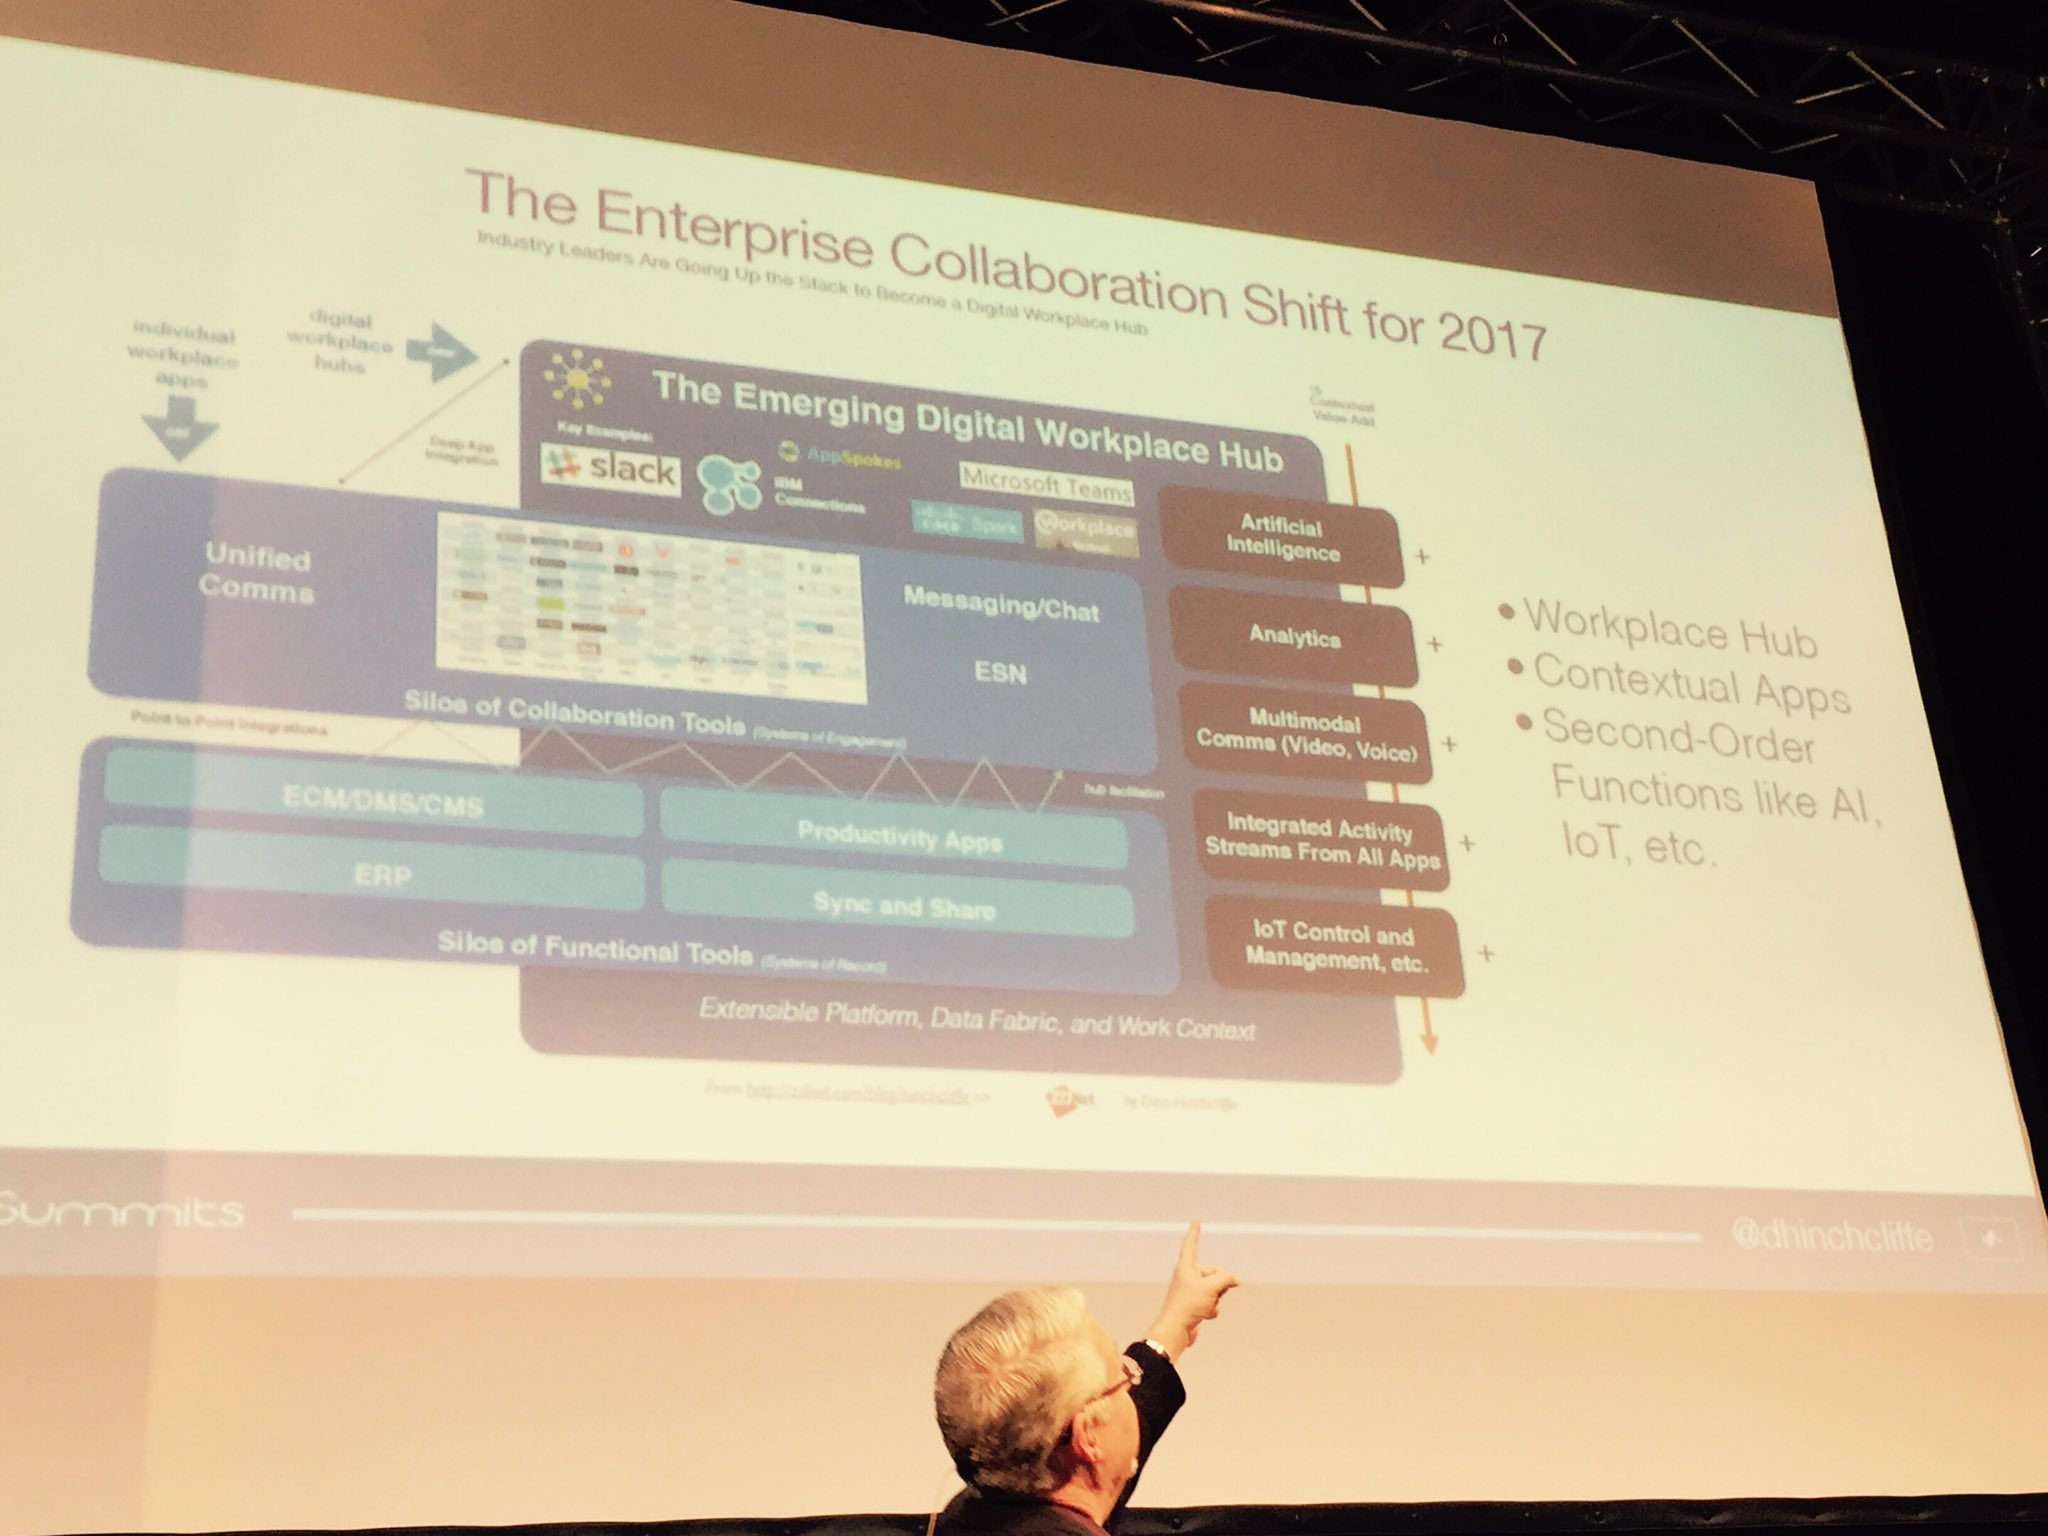 Analytics will become most important   for the #dwp says @dhinchcliffe #cebiteda https://t.co/doRFR3xXIw